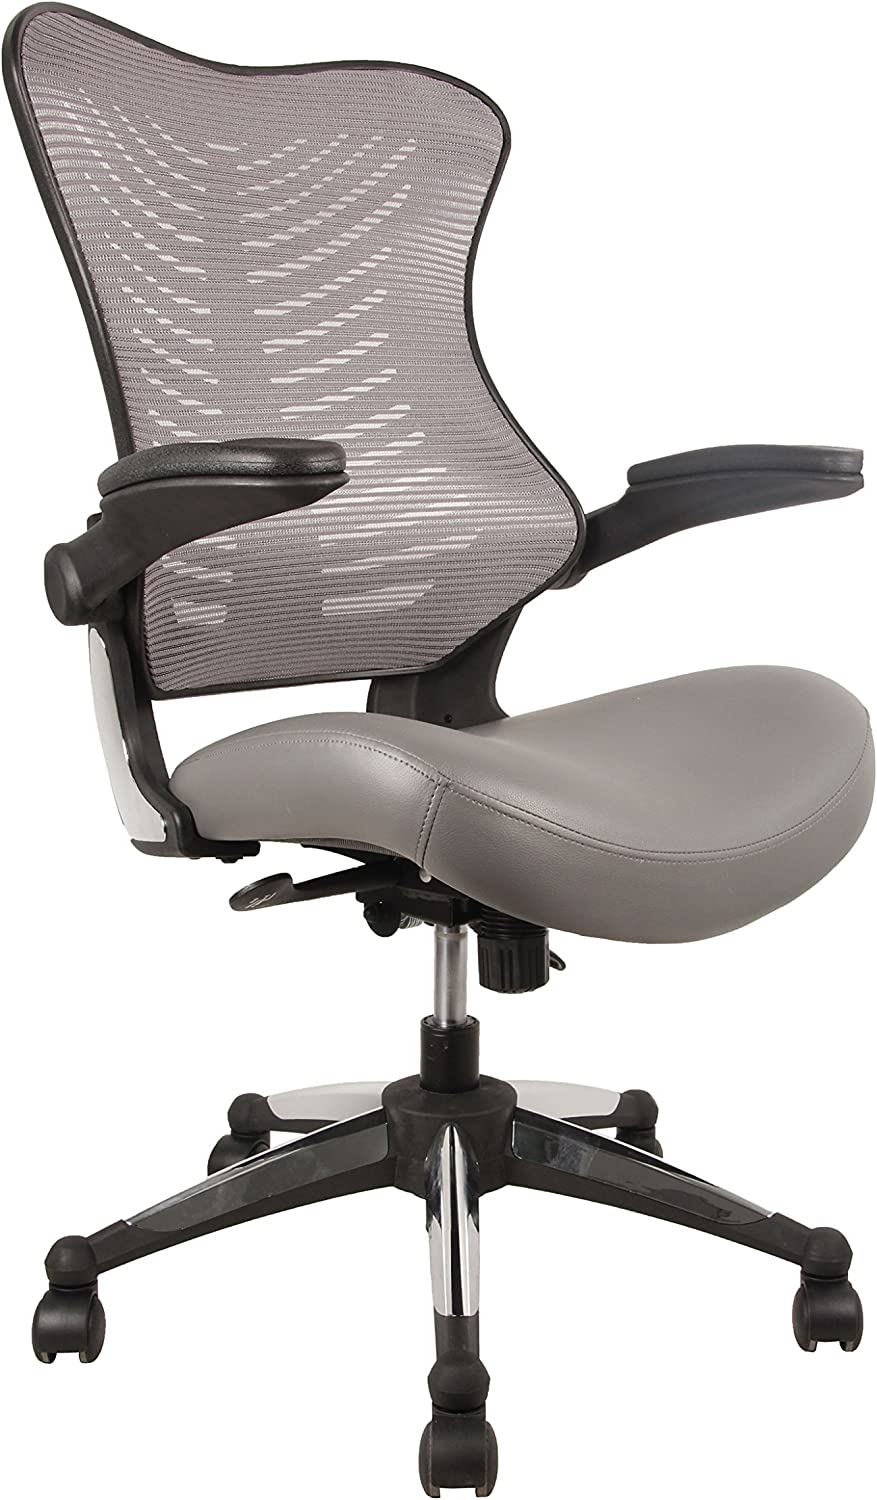 OFFICE FACTOR Executive Ergonomic Office Chair Gray Back Mesh Bonded Leather Seat Flip up Armrest Molded Seat with a 55kg Foam Density Double Handle Mechanism You Can Lock The Back in Any Position